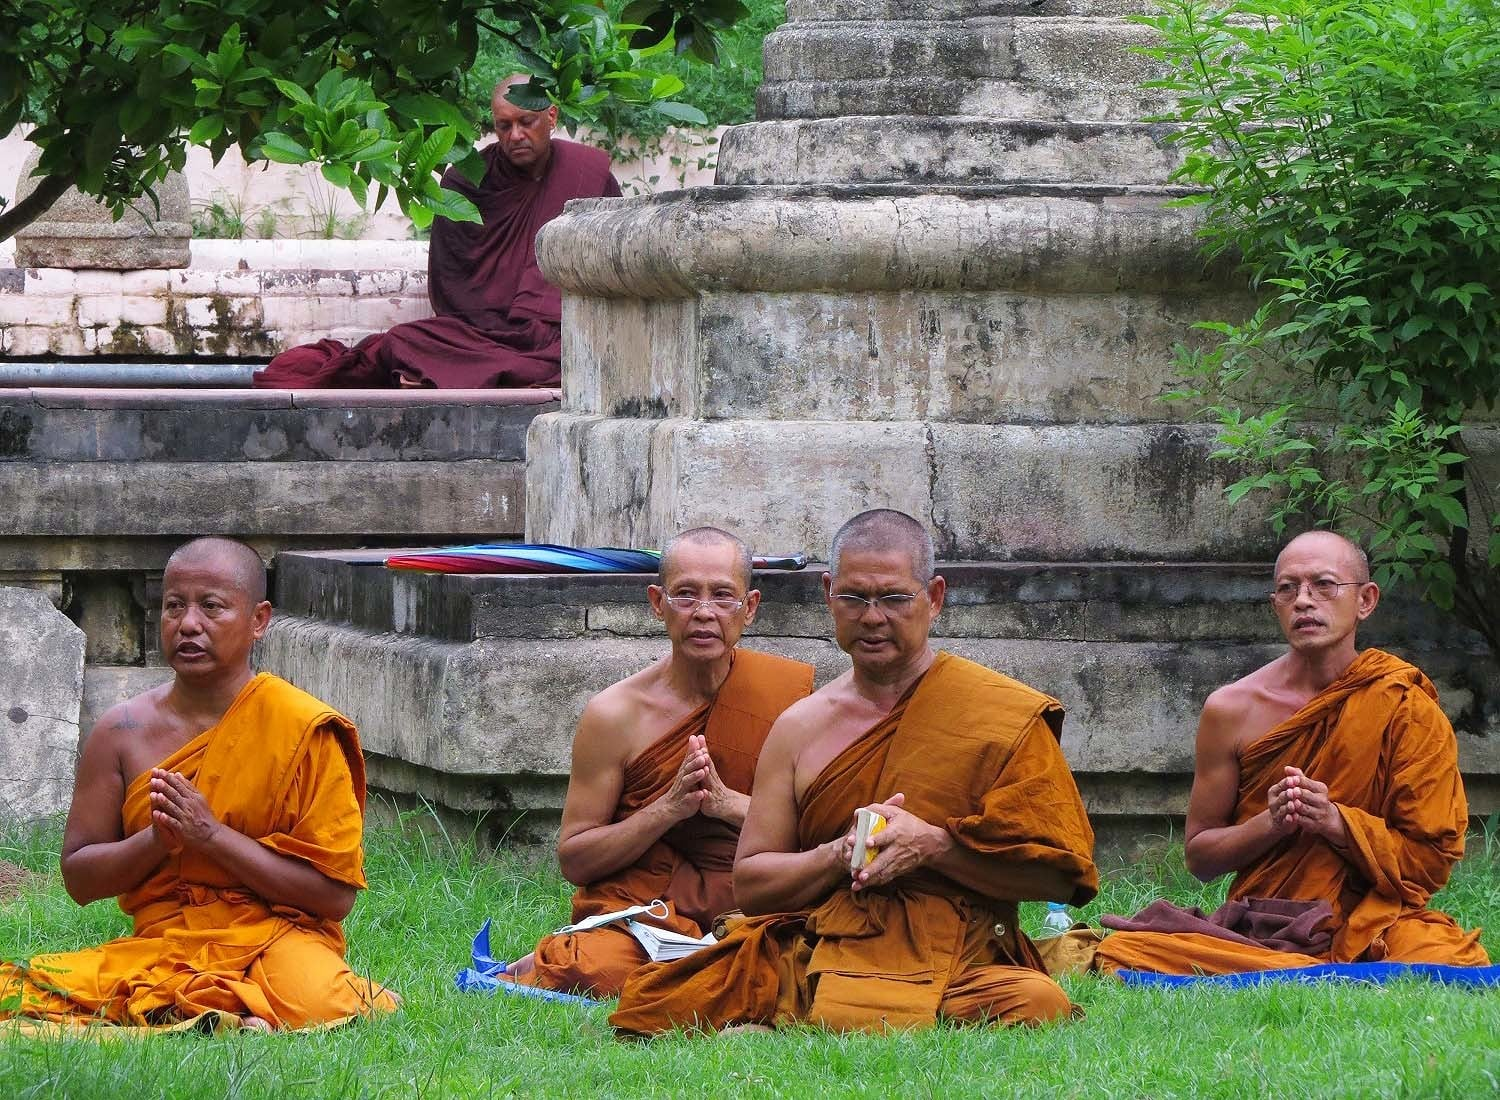 Monks near Mahabodhi Temple in Bodhgaya.